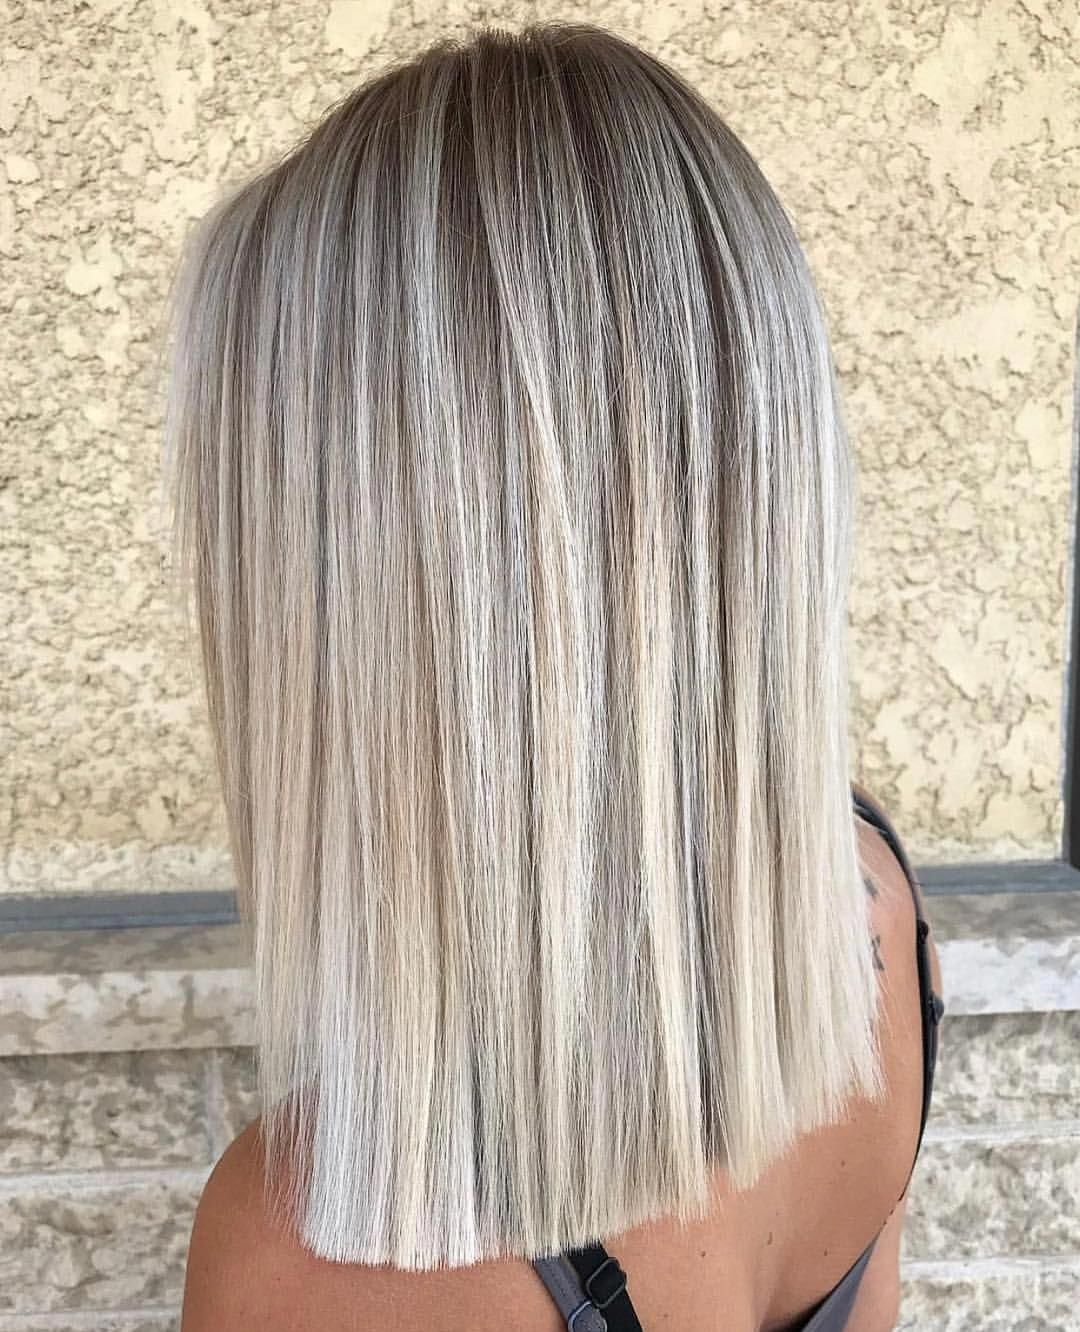 Blonde + Balayage + Platinum (dylanakendal_stylist) • Instagram Posts, Videos & Stories on  • 3️⃣ most engaged post of ✨2️⃣0️⃣1️⃣8️⃣✨ |